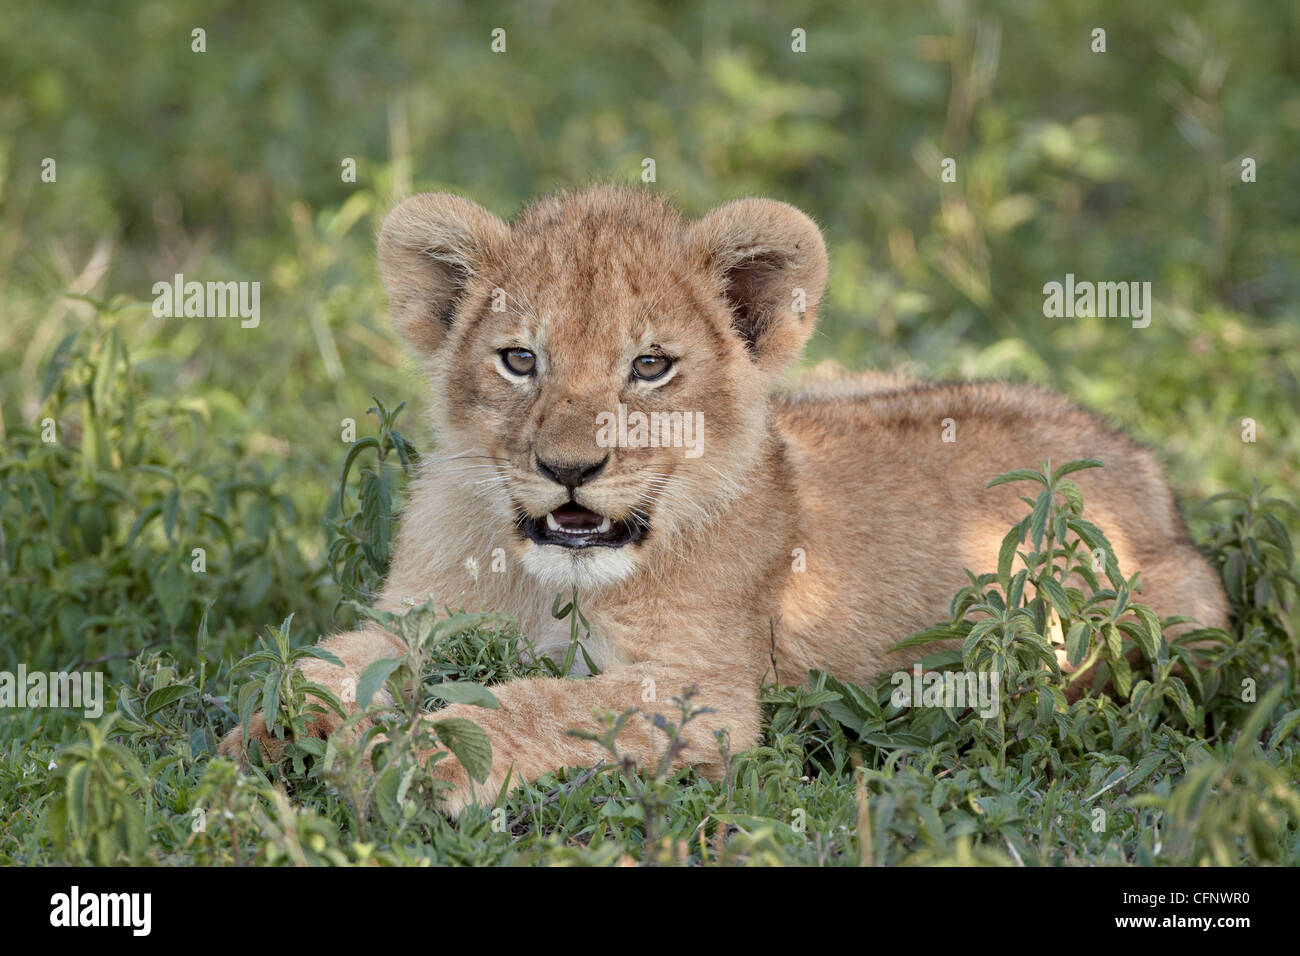 Young lion (Panthera leo) cub, Serengeti National Park, Tanzania, East Africa, Africa - Stock Image